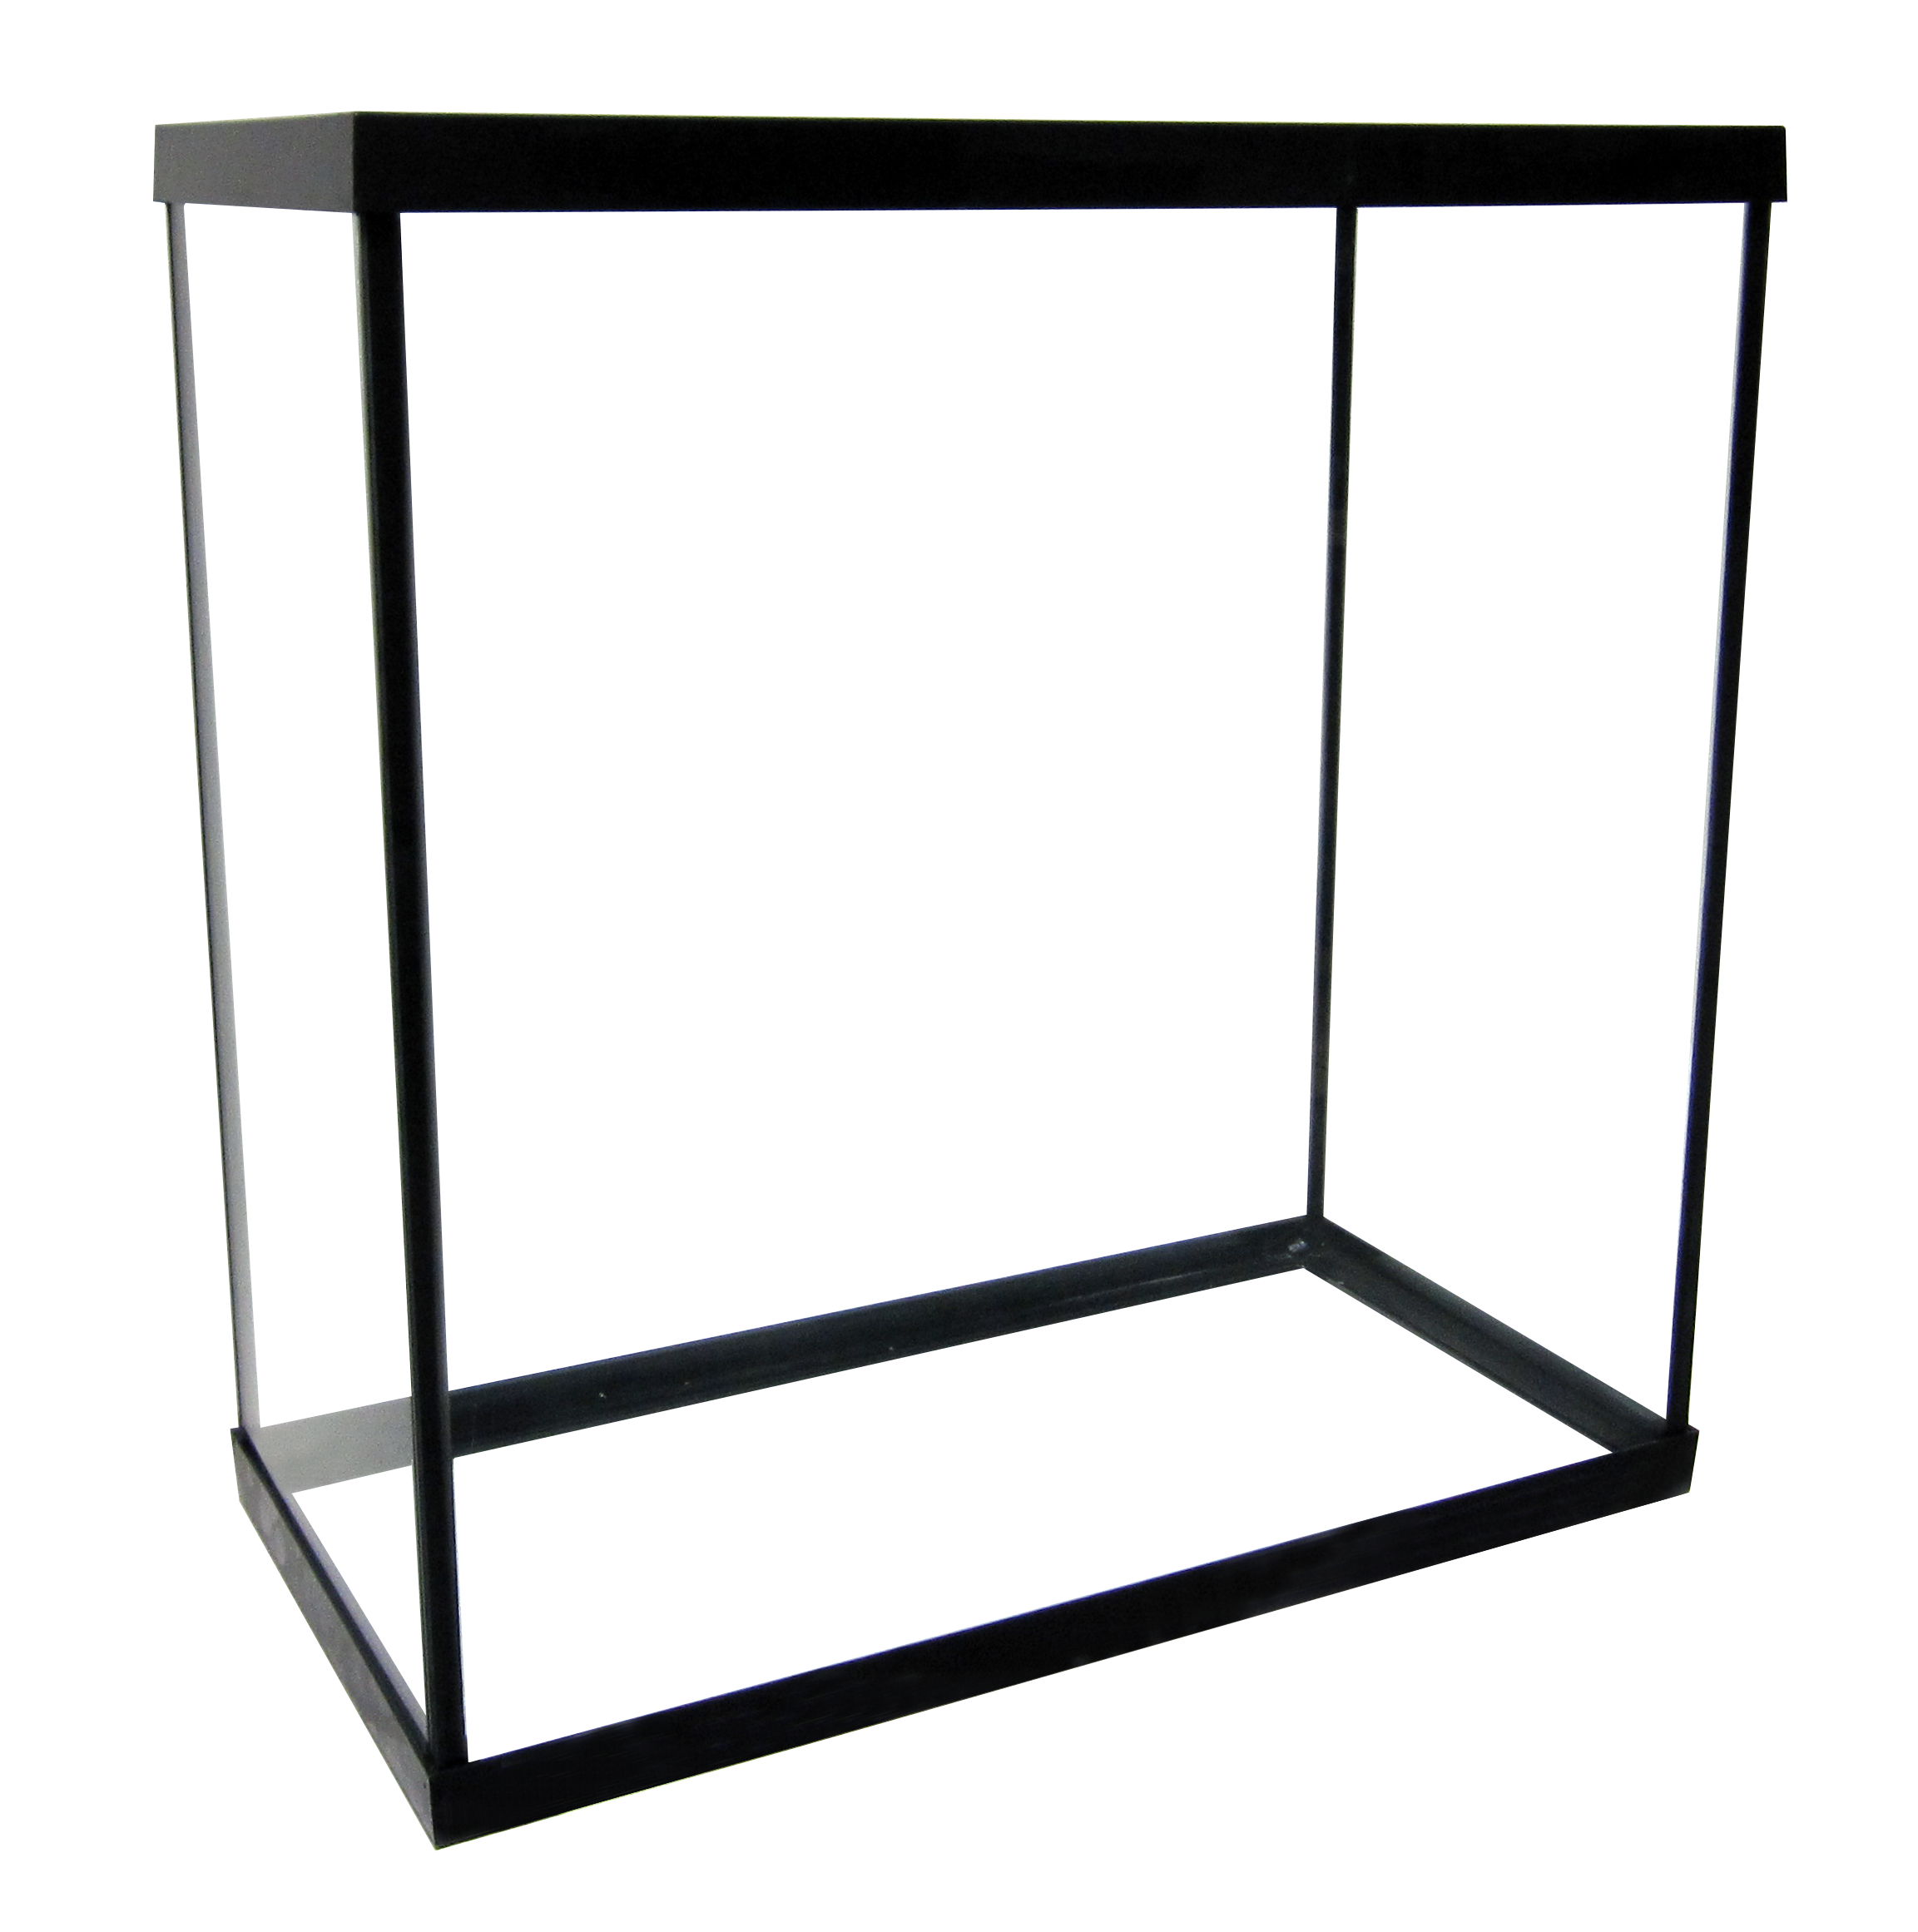 "30 X. High Aquarium - 24x12x24""   SKU#:AM11031  UPC#: 7-49729-11031-6  Product Dimension: 24.3""x12.5""x25.25""  Capacity: Approximately 30 gallons  Weight: 44 lbs"